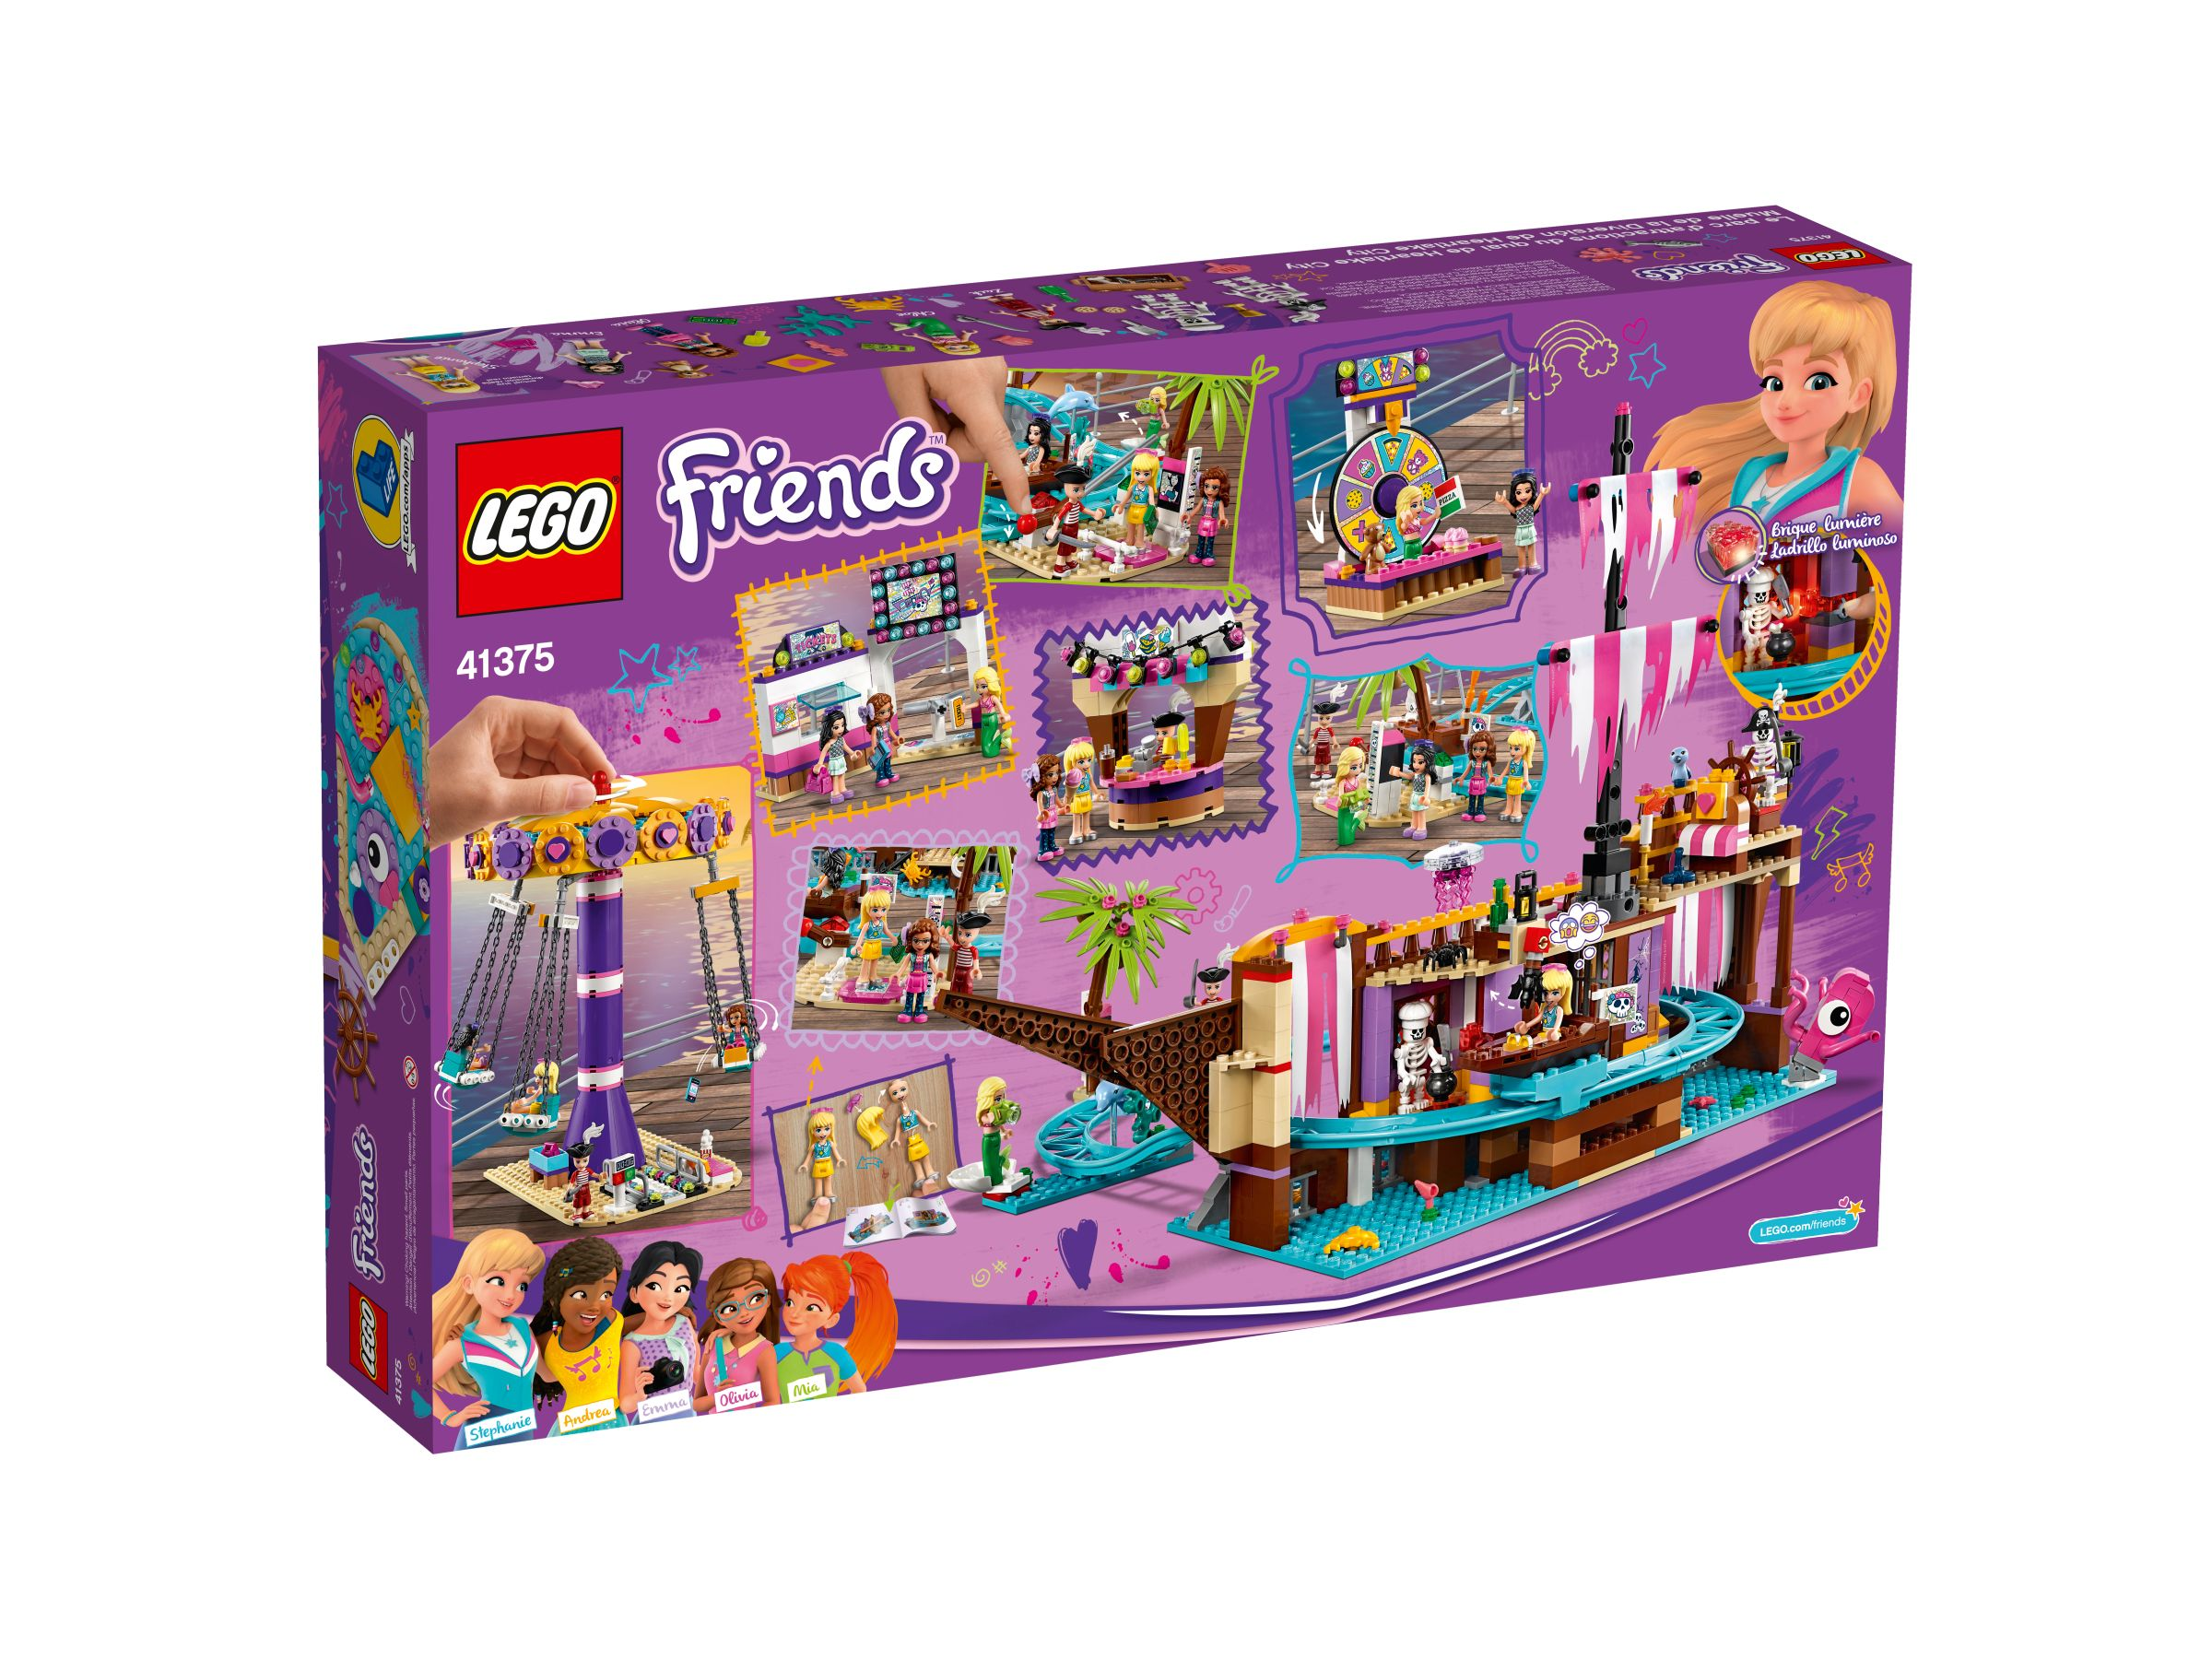 LEGO Friends 41375 Vergnügungspark von Heartlake City LEGO_41375_alt4.jpg